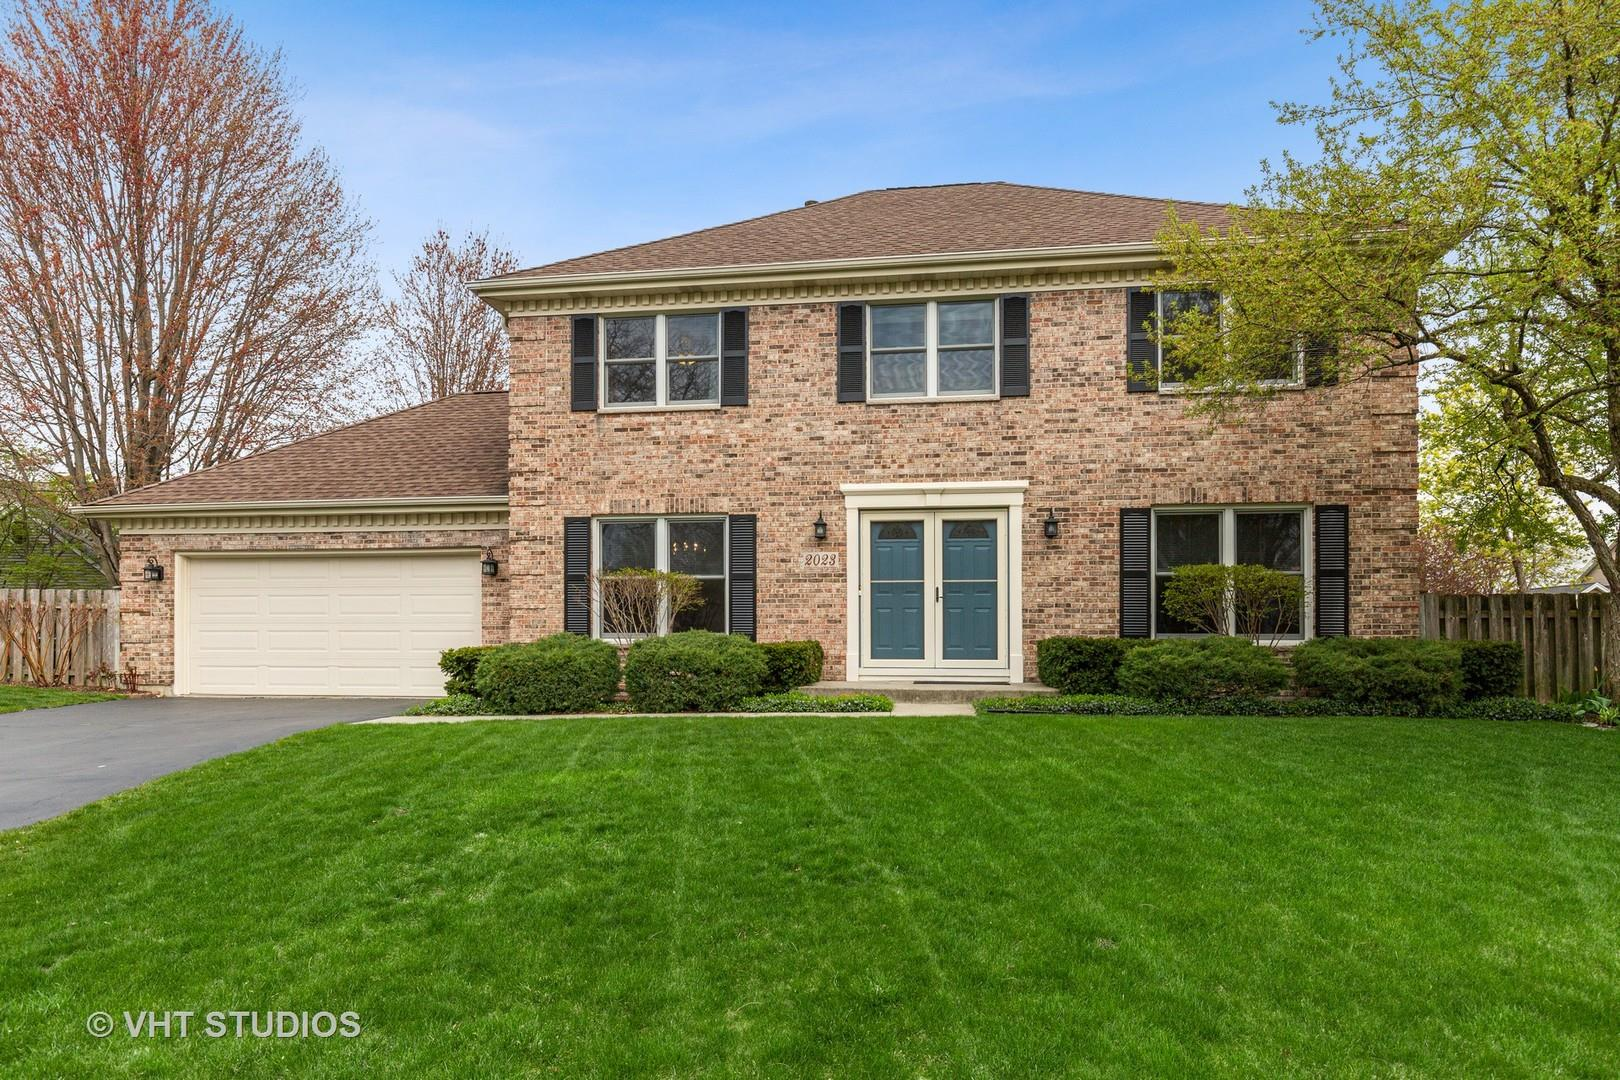 2023 Spaulding Court, West Dundee, IL 60118 - #: 11062629